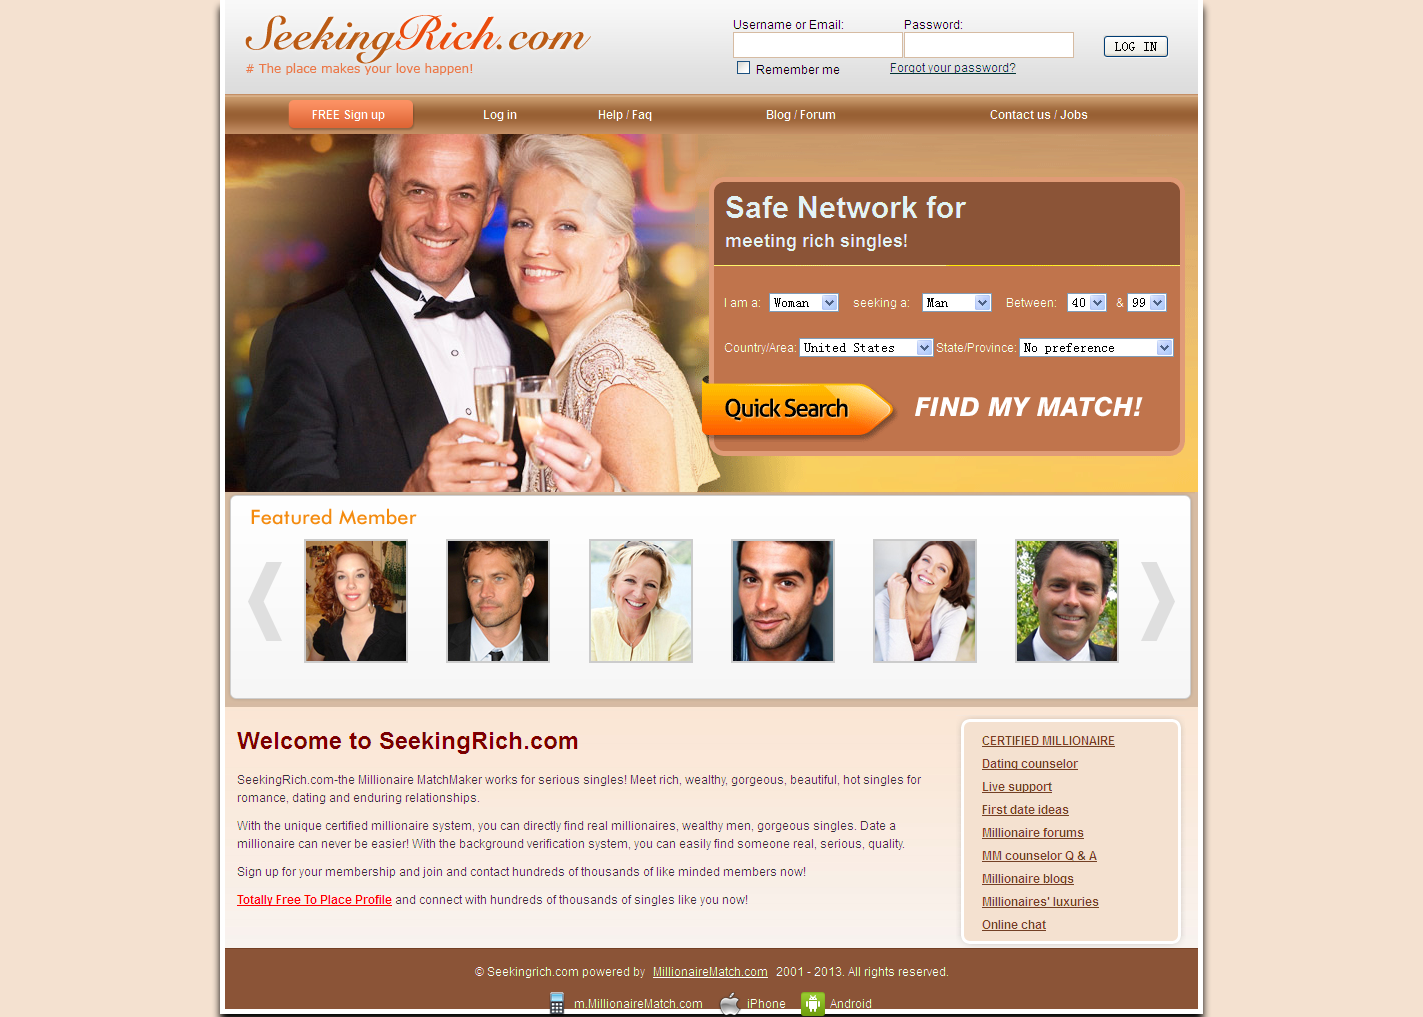 fairburn singles dating site Luvfreecom is a 100% free online dating and personal ads site there are a lot of douglasville singles searching romance, friendship, fun and more dates join our douglasville dating site, view free personal ads of single people and talk with them in chat rooms in a real time.